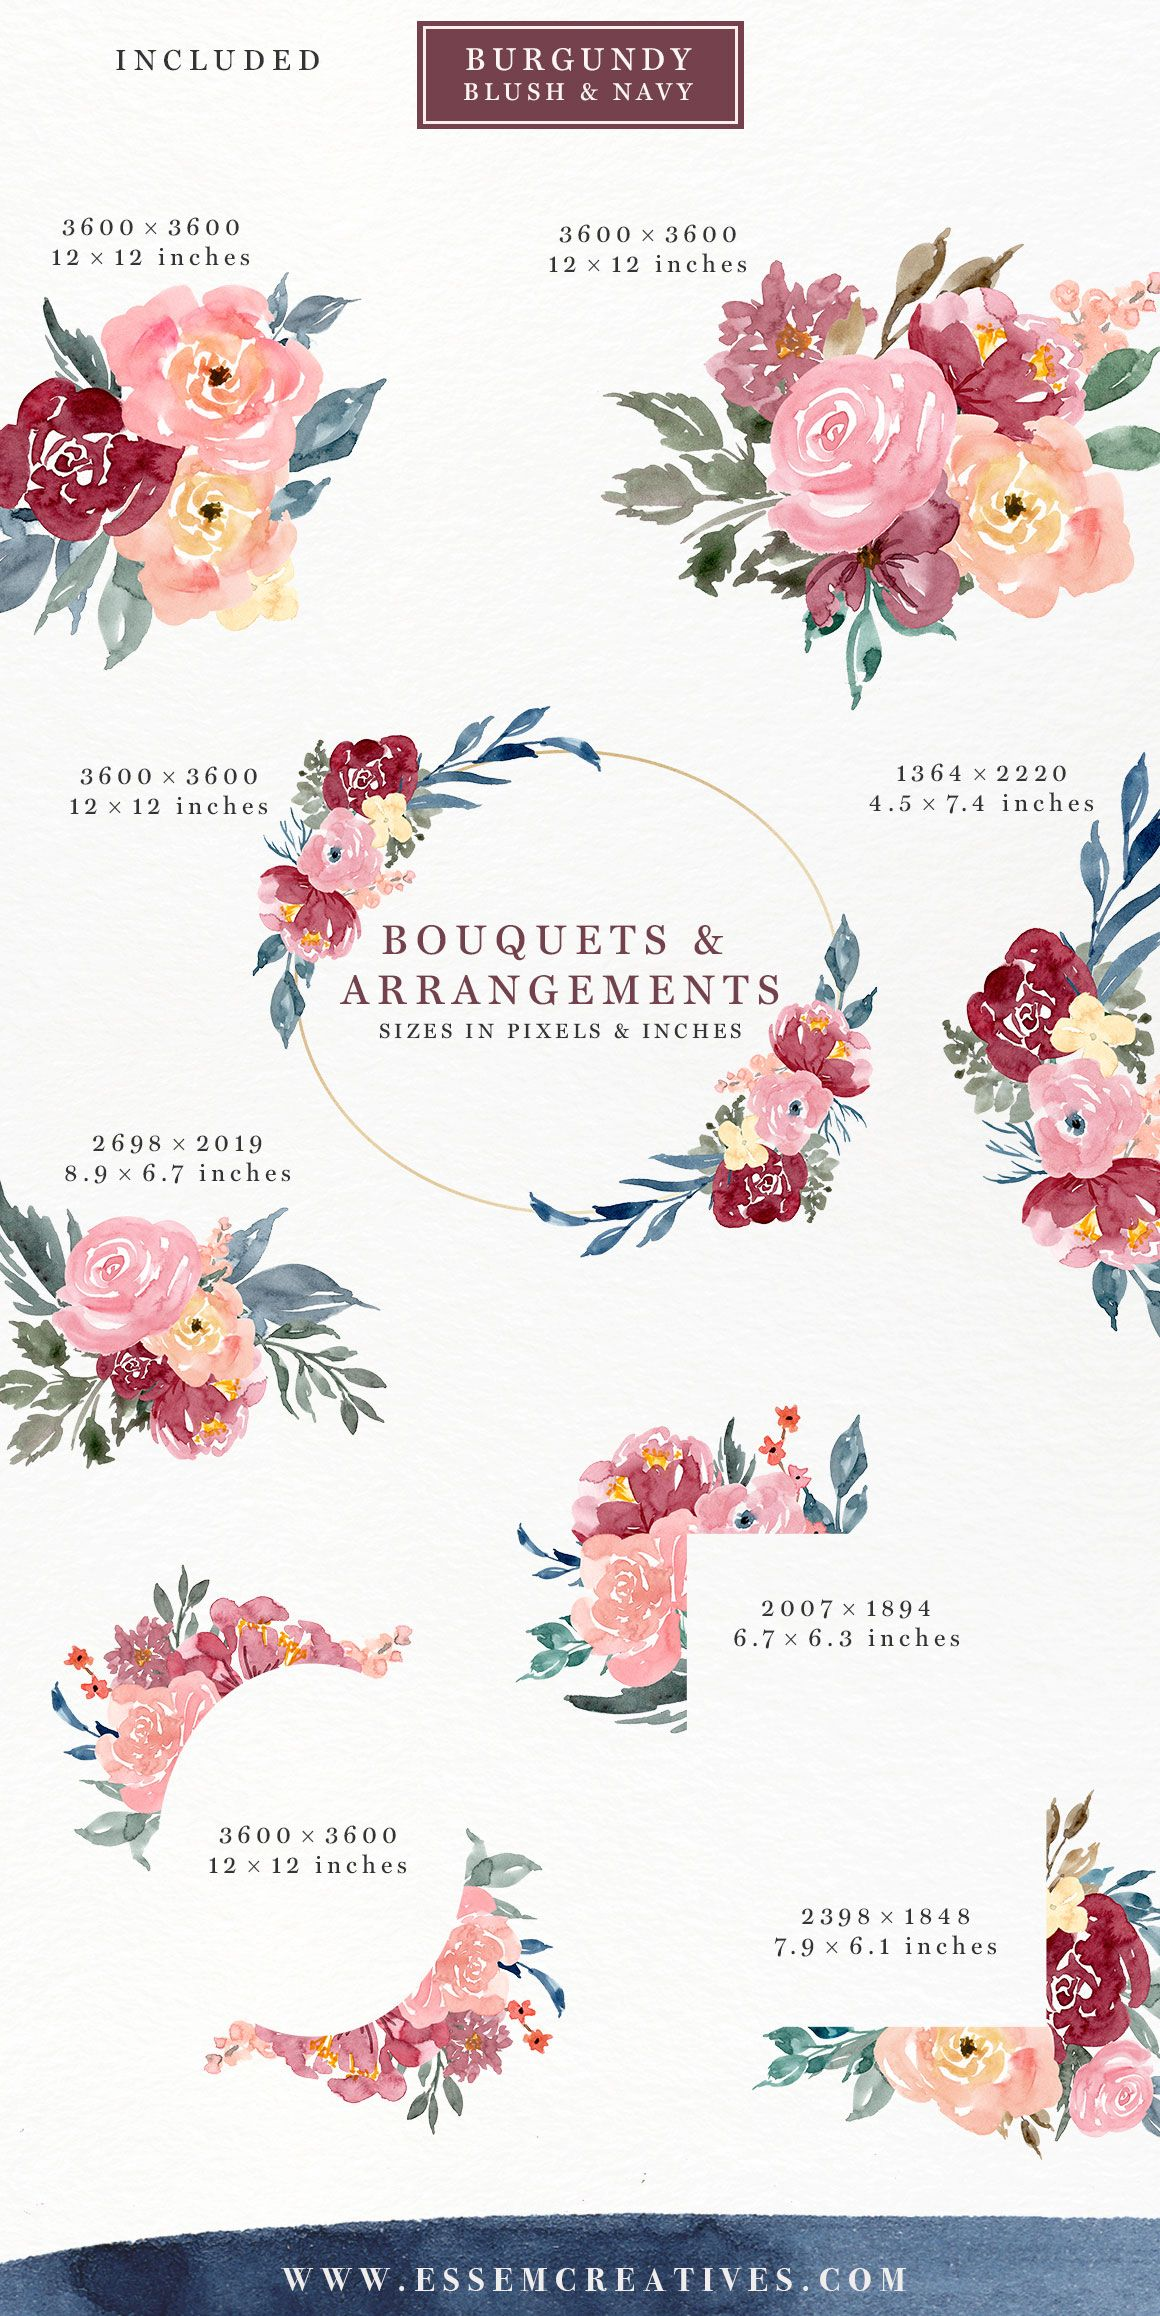 Burgundy Blush Navy Floral Watercolor Bouquets Borders Corners